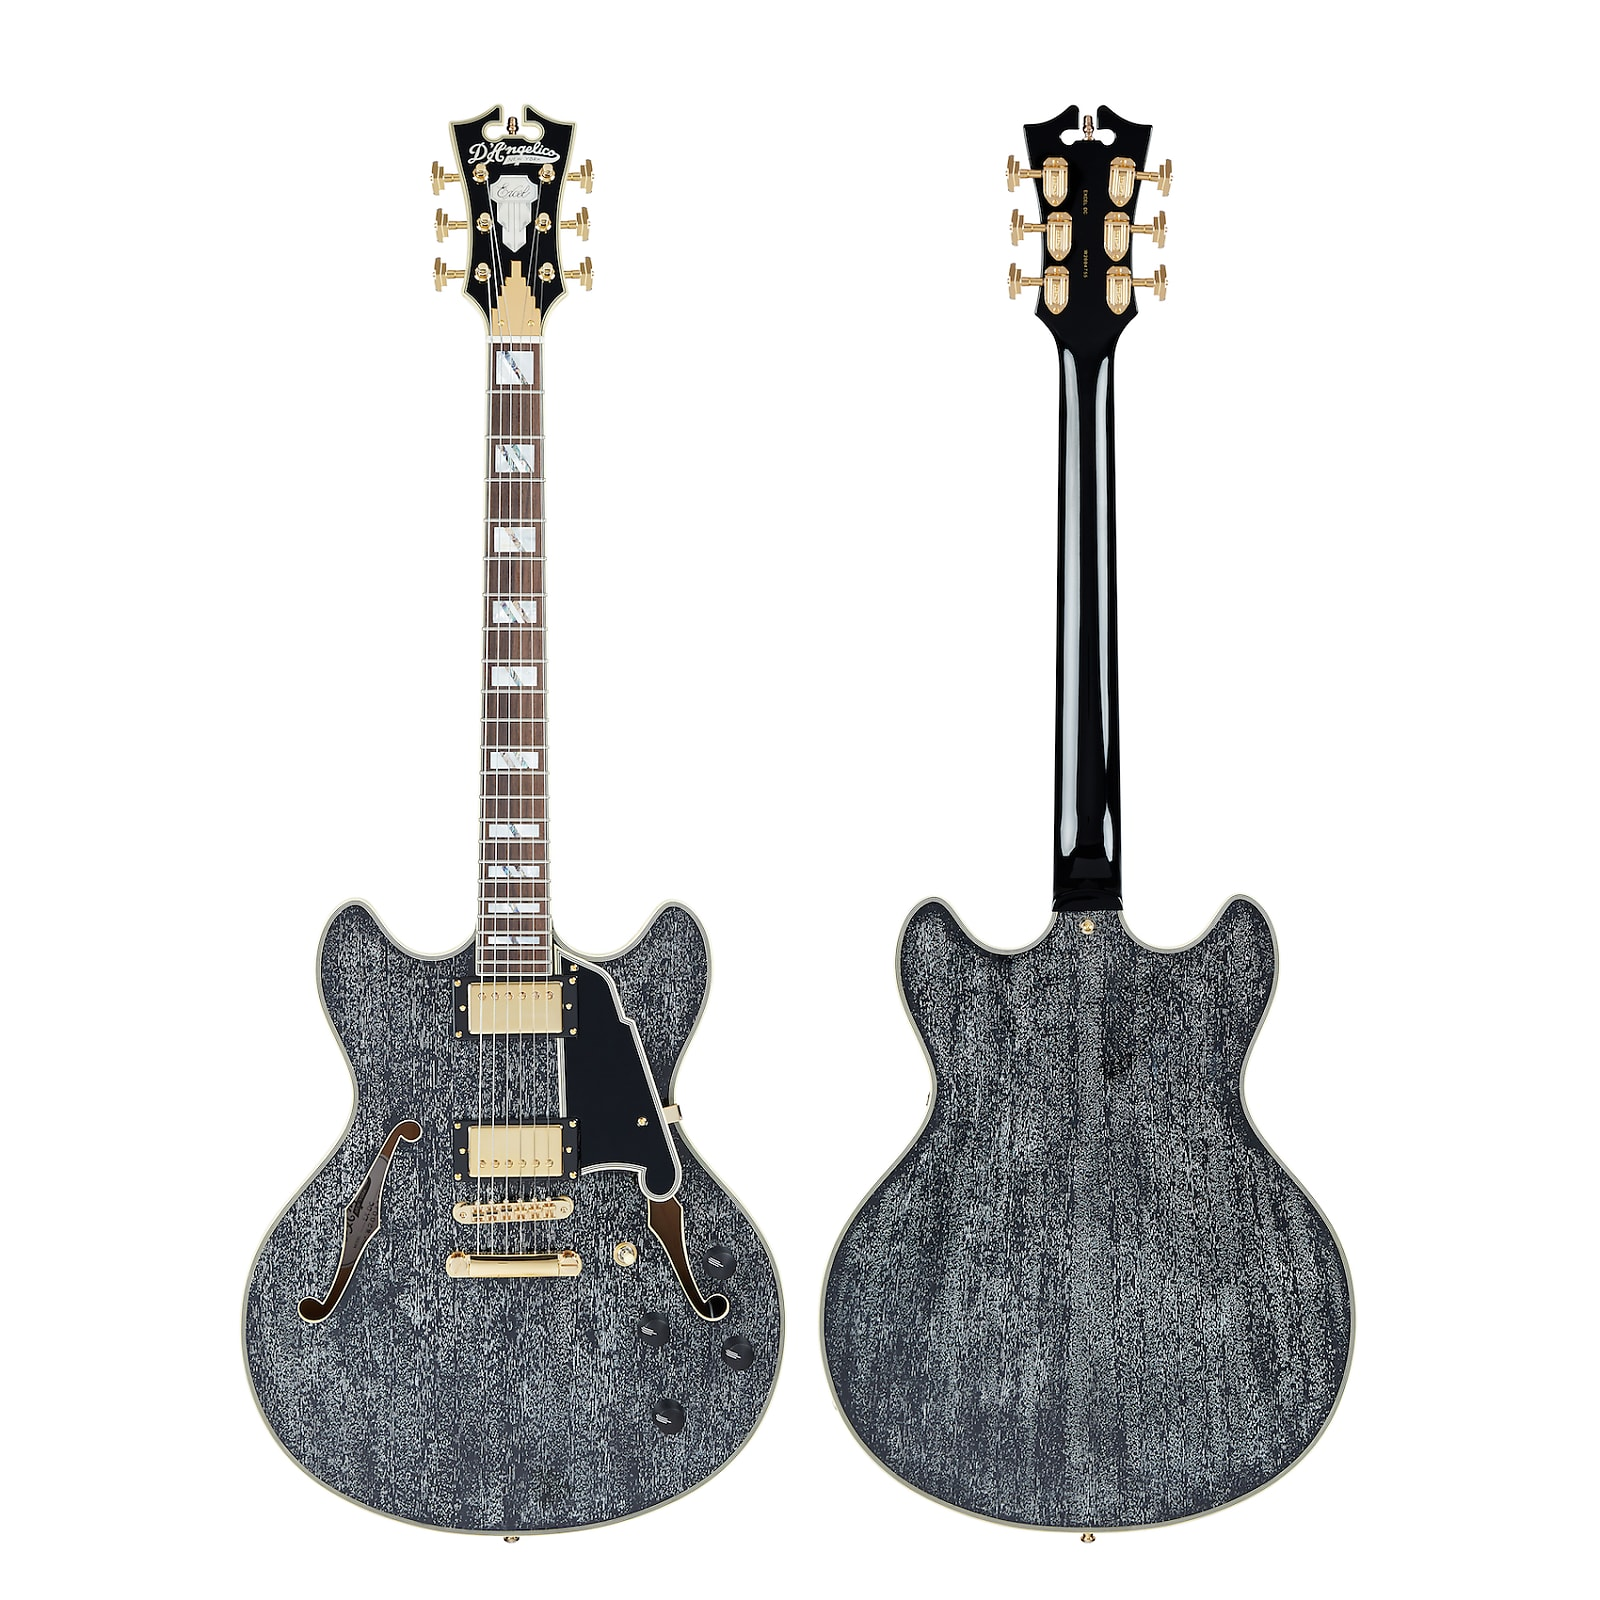 D'Angelico Excel DC Semi-Hollow Electric Guitar Black Dog w/ Gig Bag